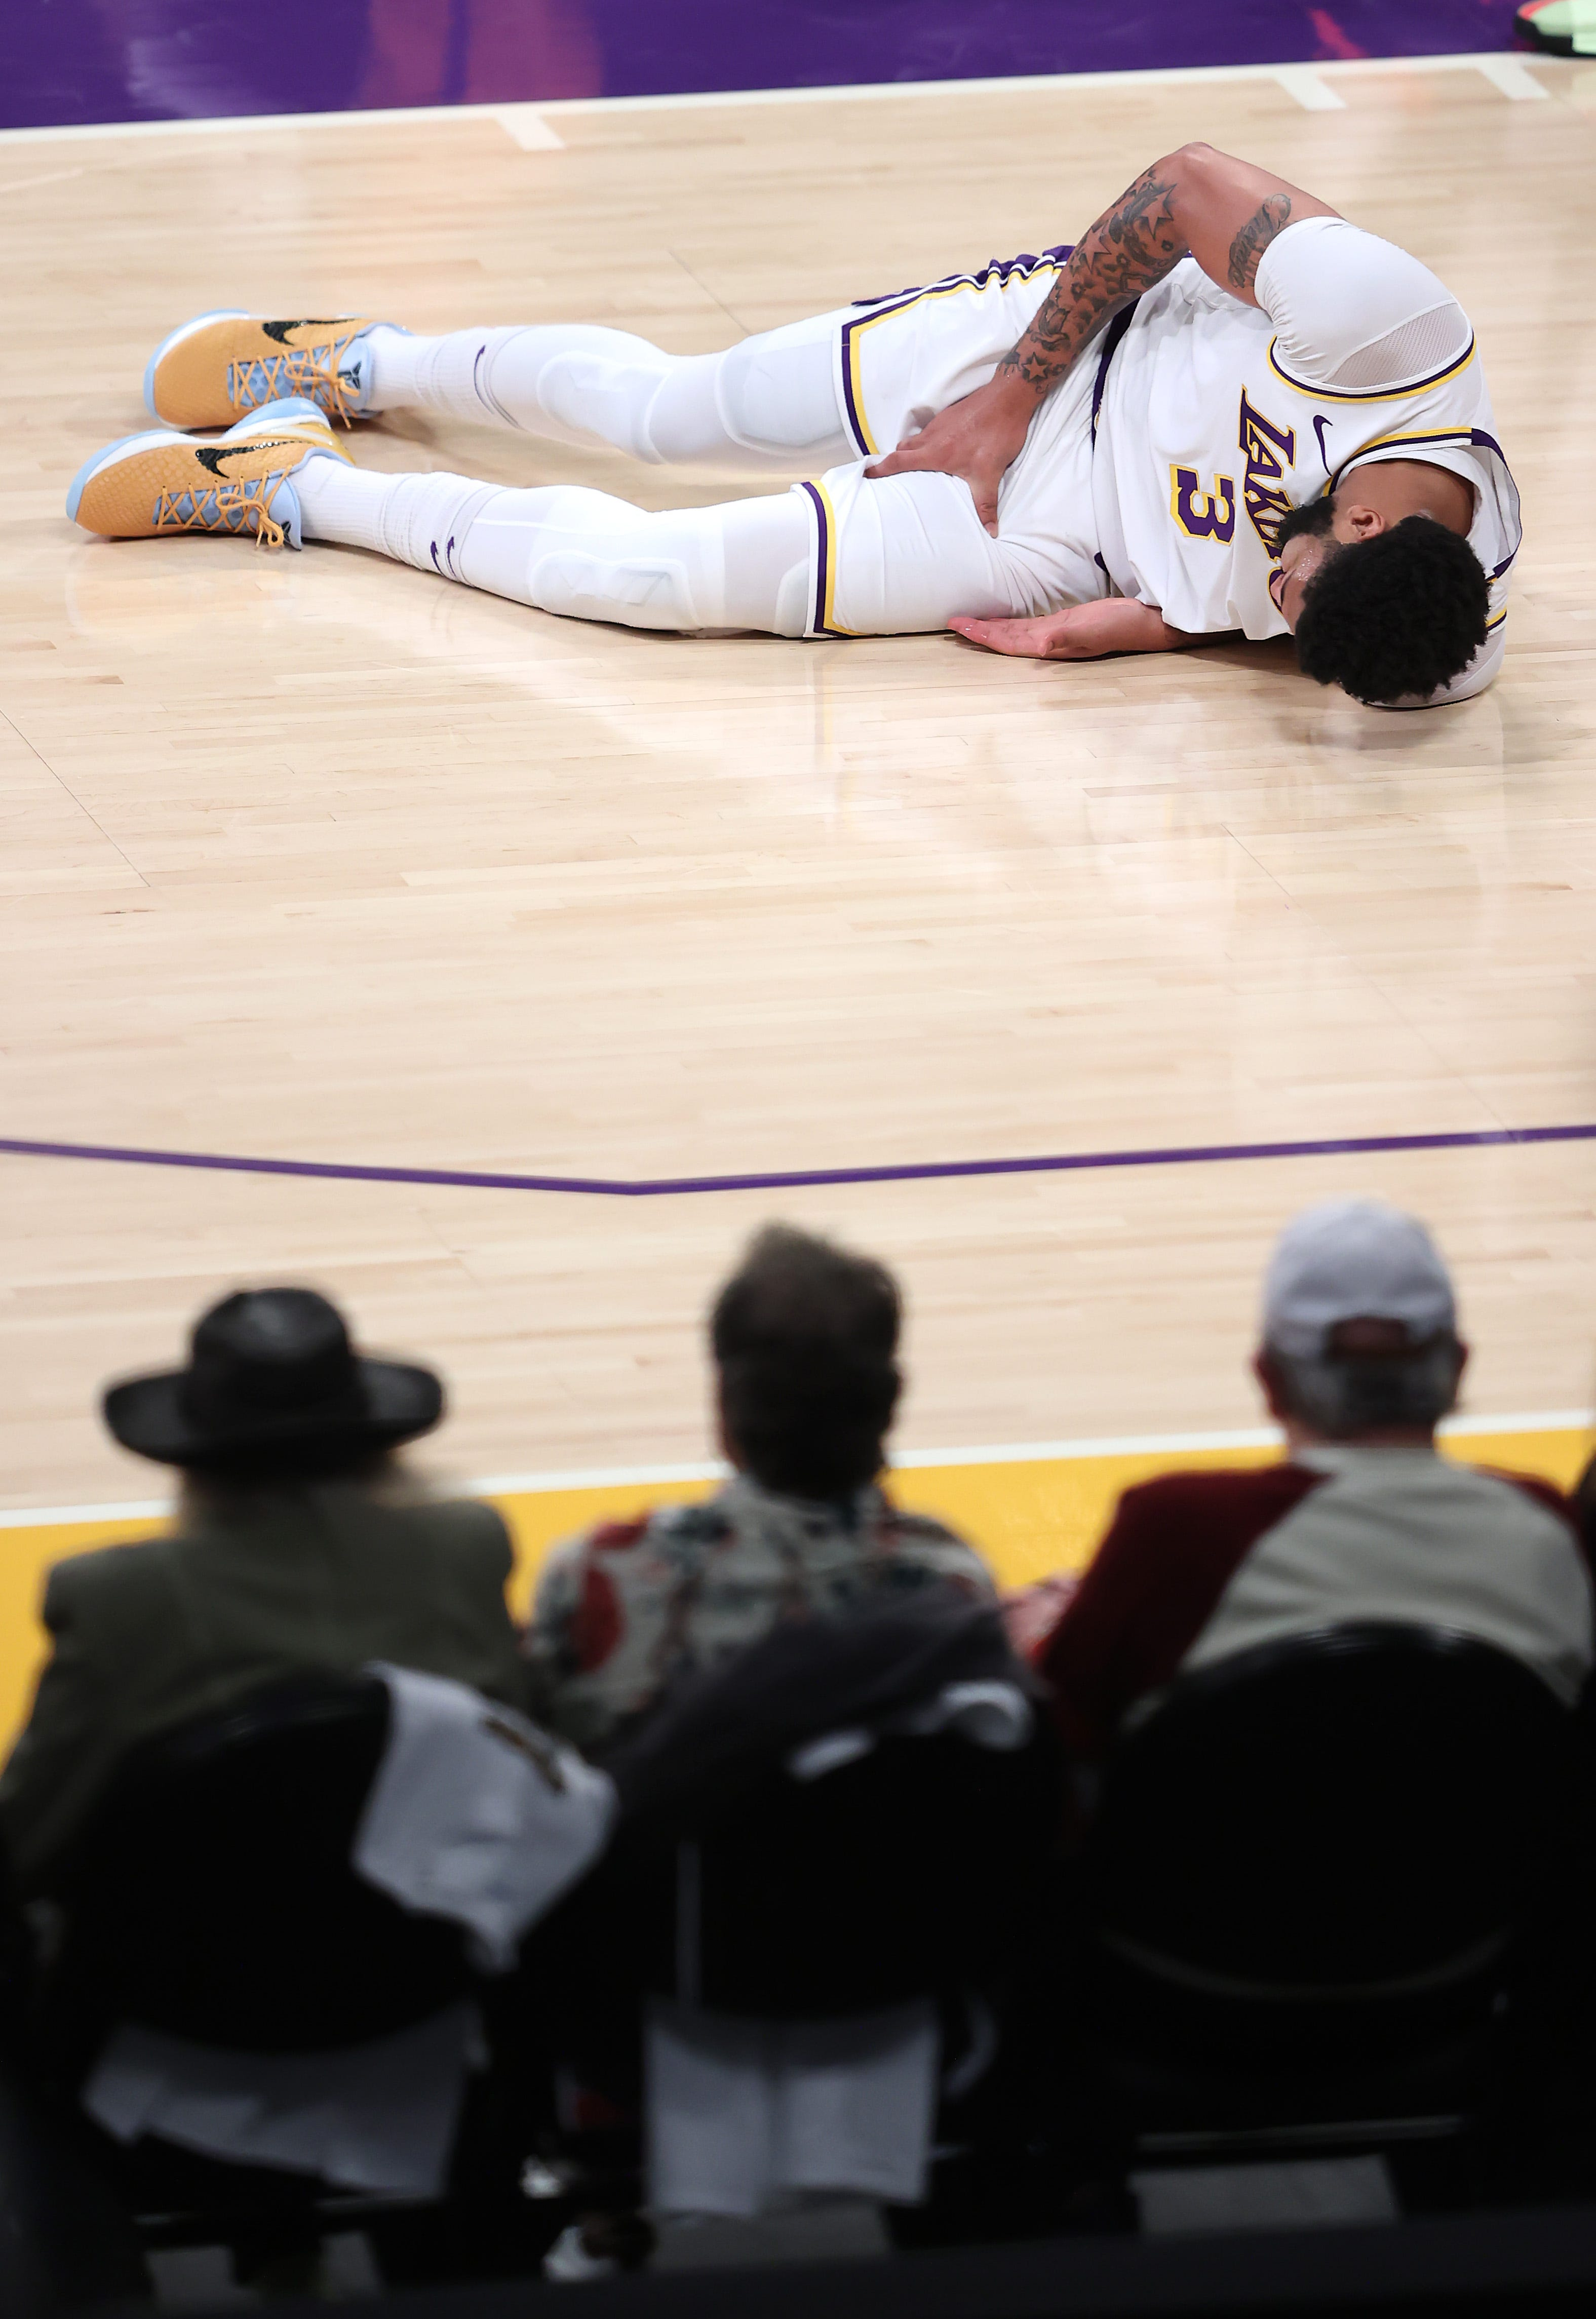 Anthony Davis injury: Lakers star questionable with groin strain for Game 5 vs. Suns